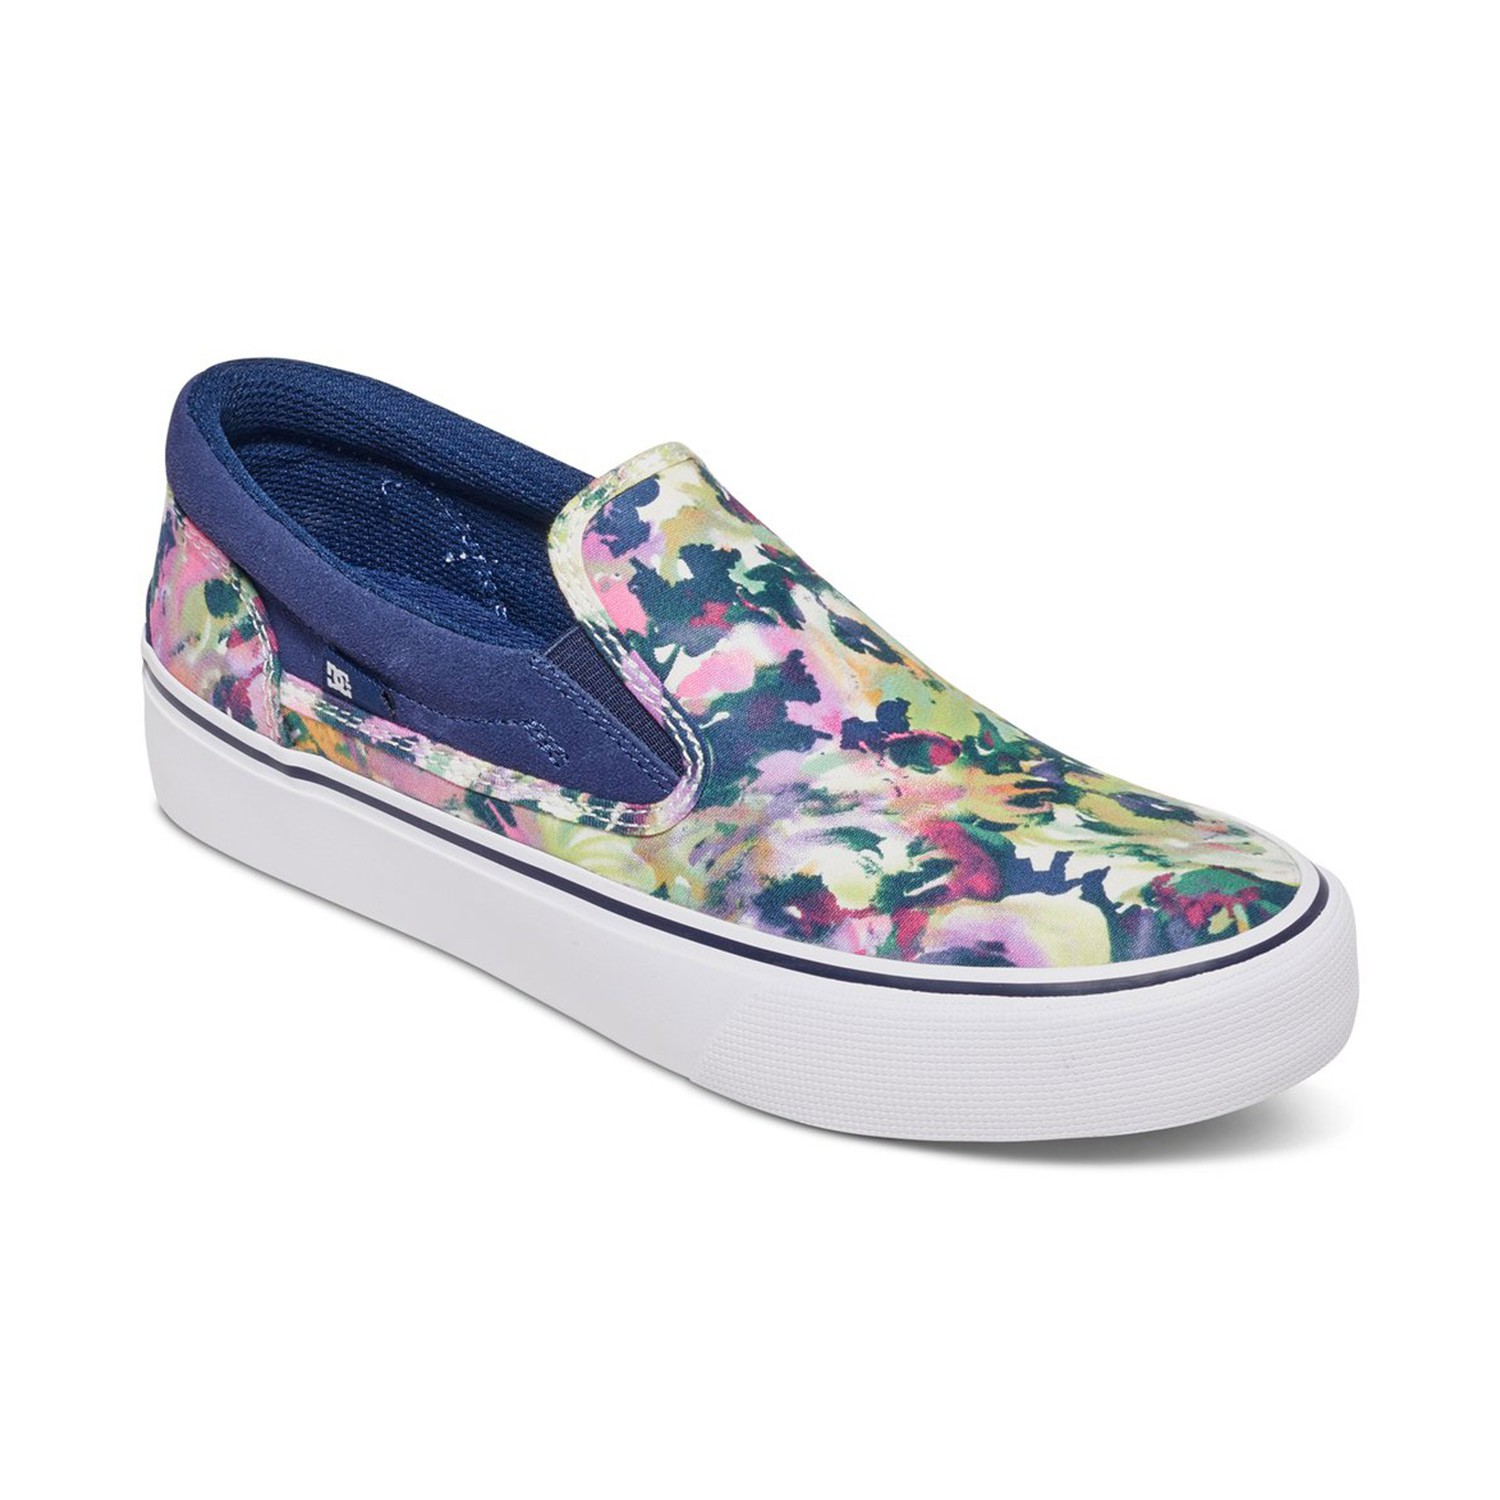 160a53452c1c76 Dc Slip On Shoes At Journeys - Style Guru  Fashion